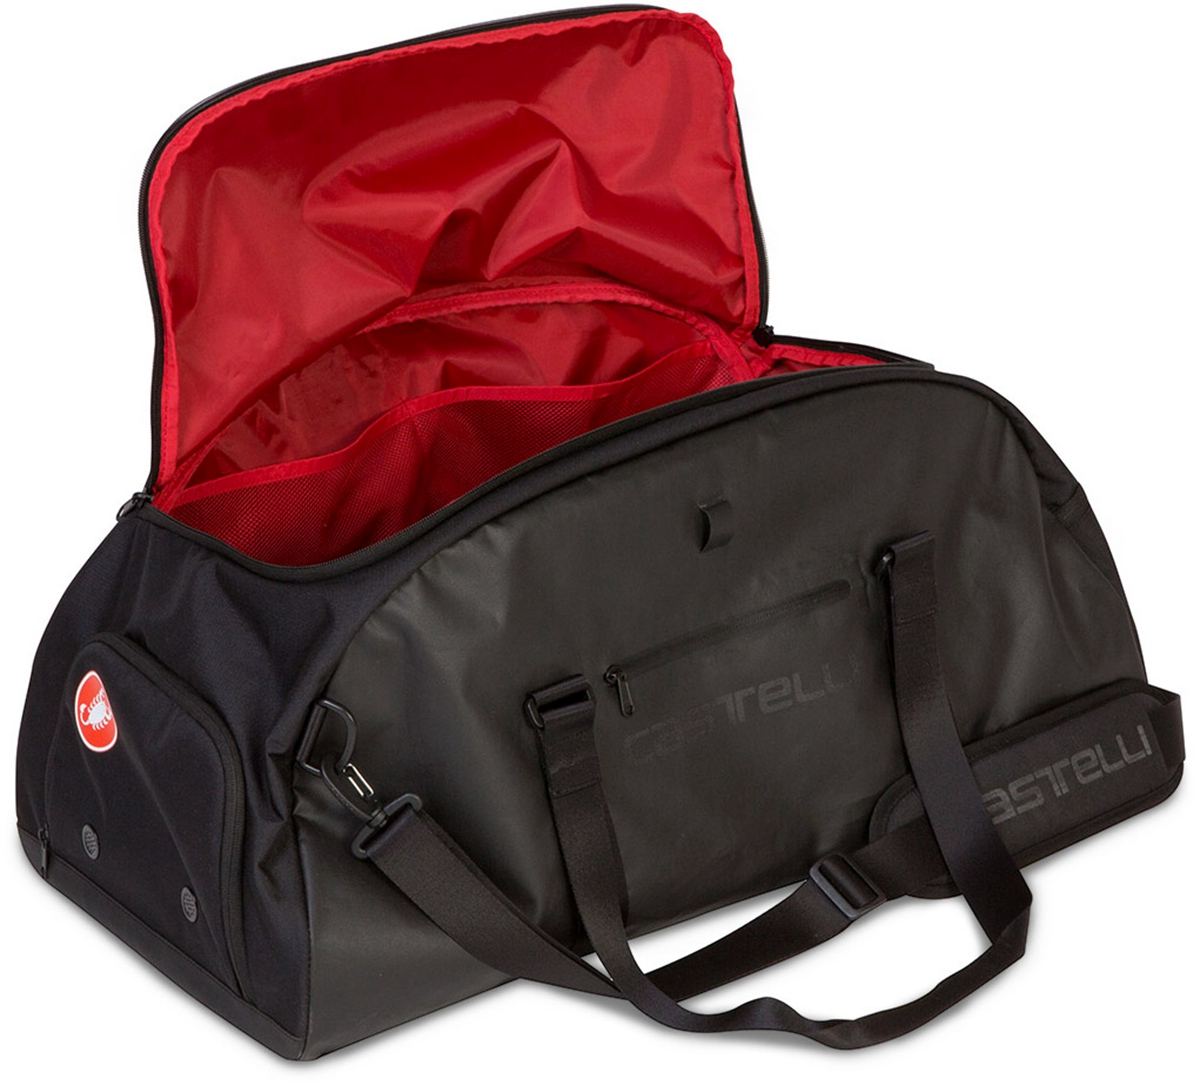 cs890102-castelli-gear-duffle-bag-black-inside_副本.jpg